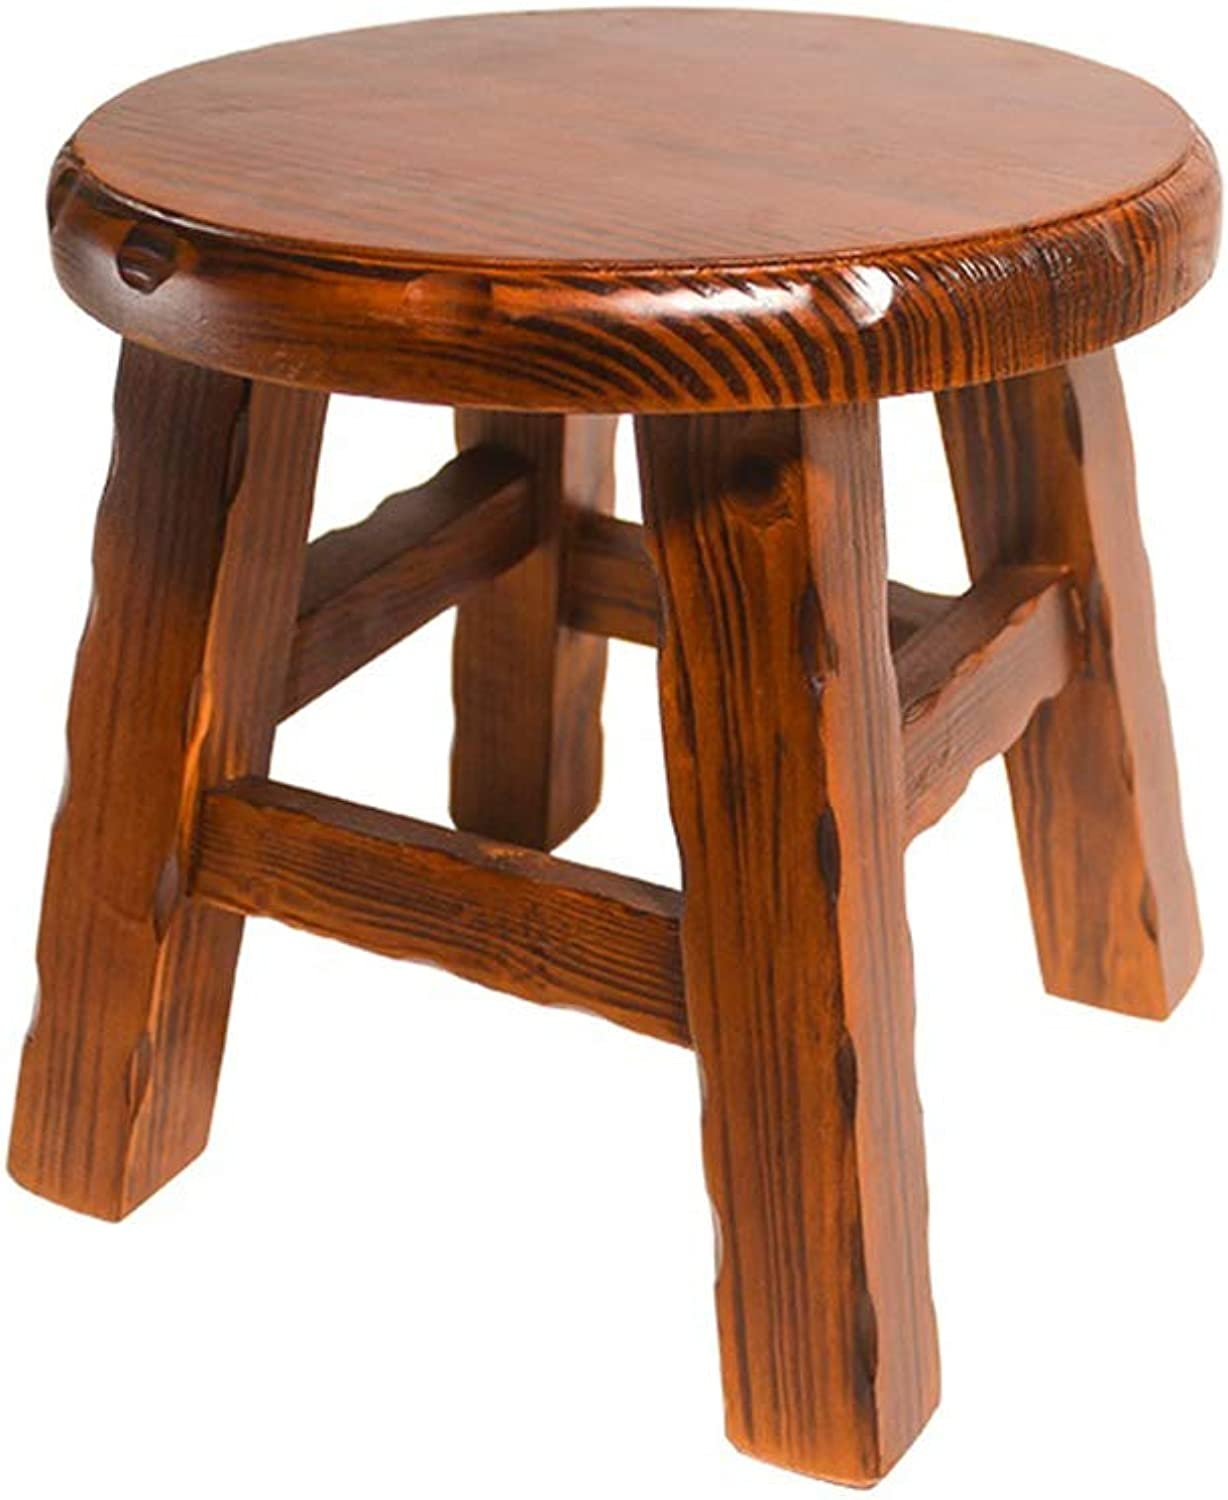 Stool - shoes Bench, Living Room Solid Wood Sofa Bench, Household Coffee Table stool Bench Small stool